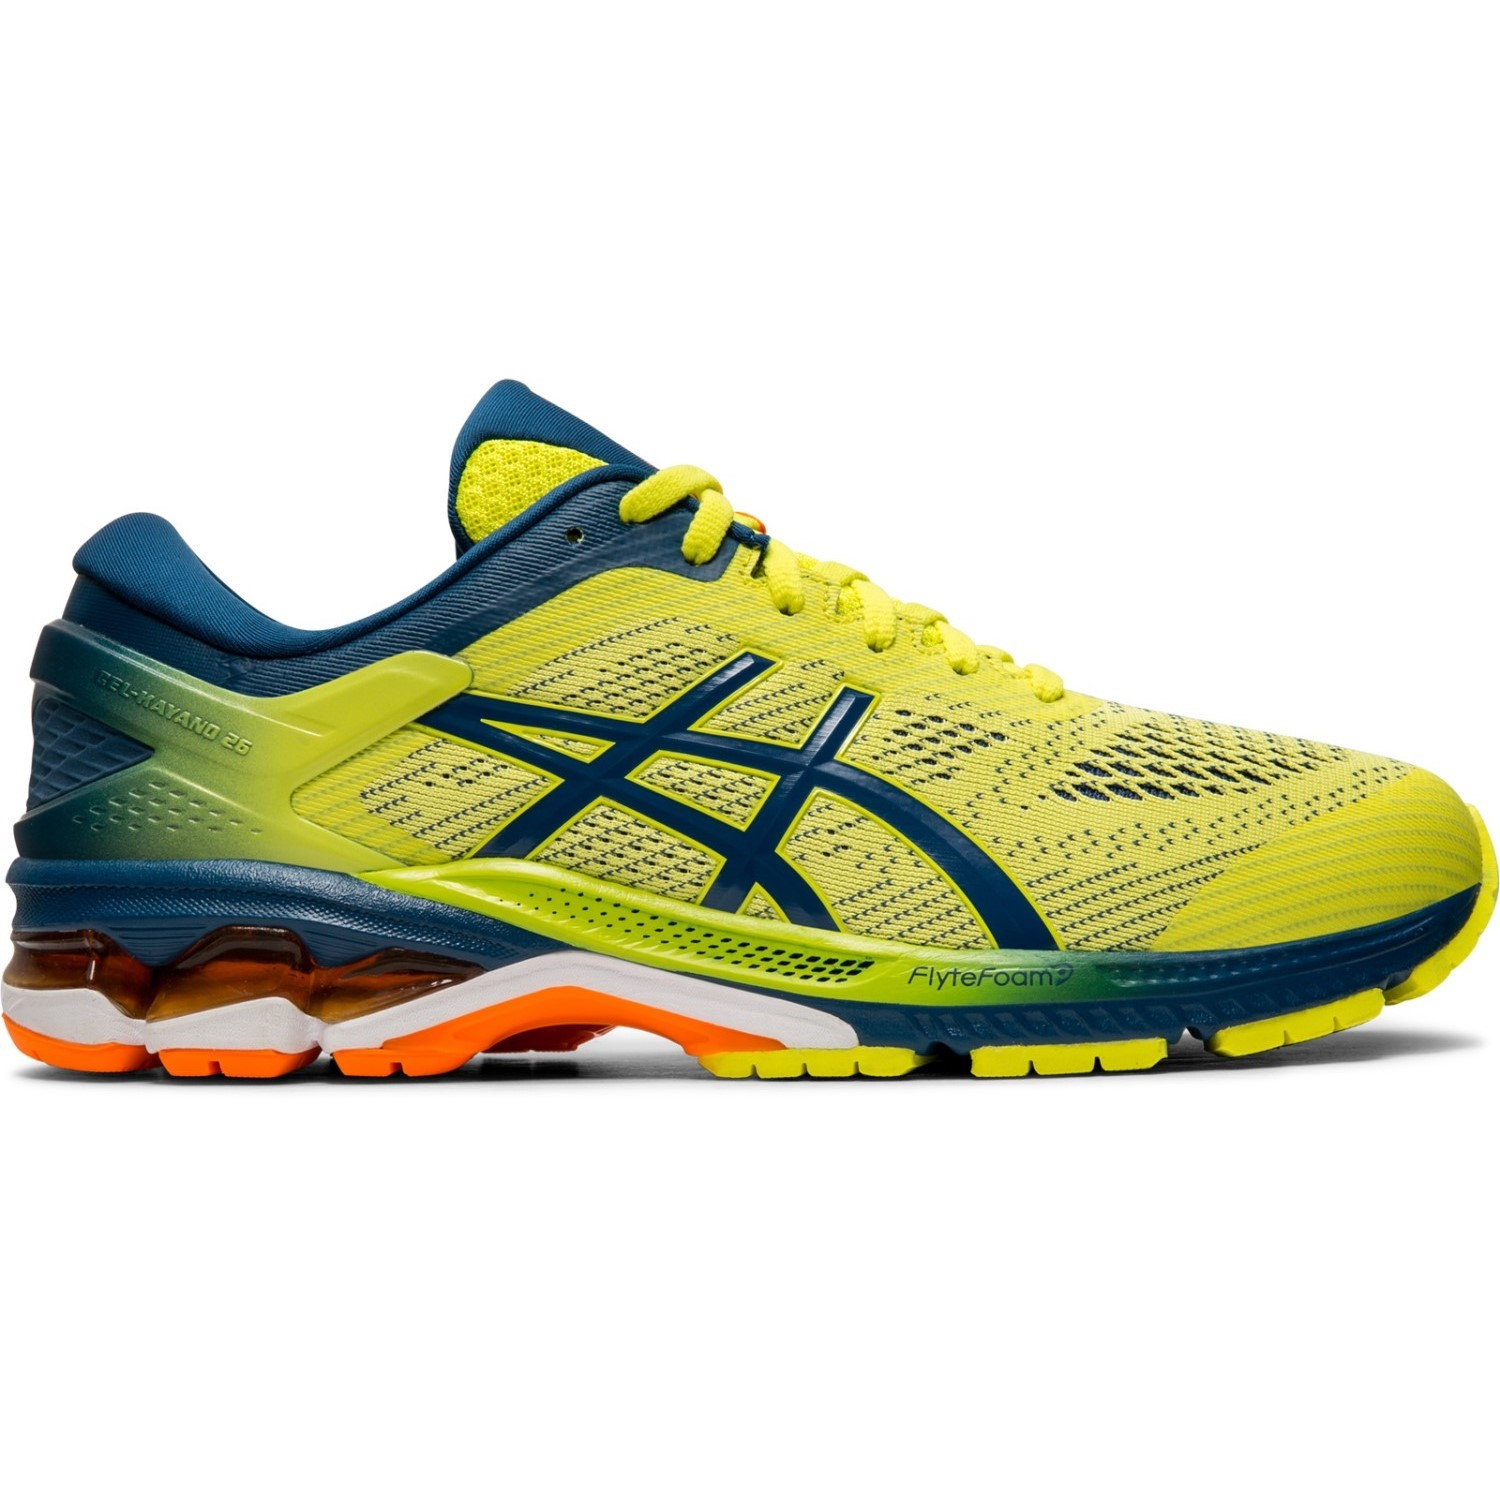 ee1a256d9 Asics Gel Kayano 26 Kai 10P/10C - Mens Running Shoes